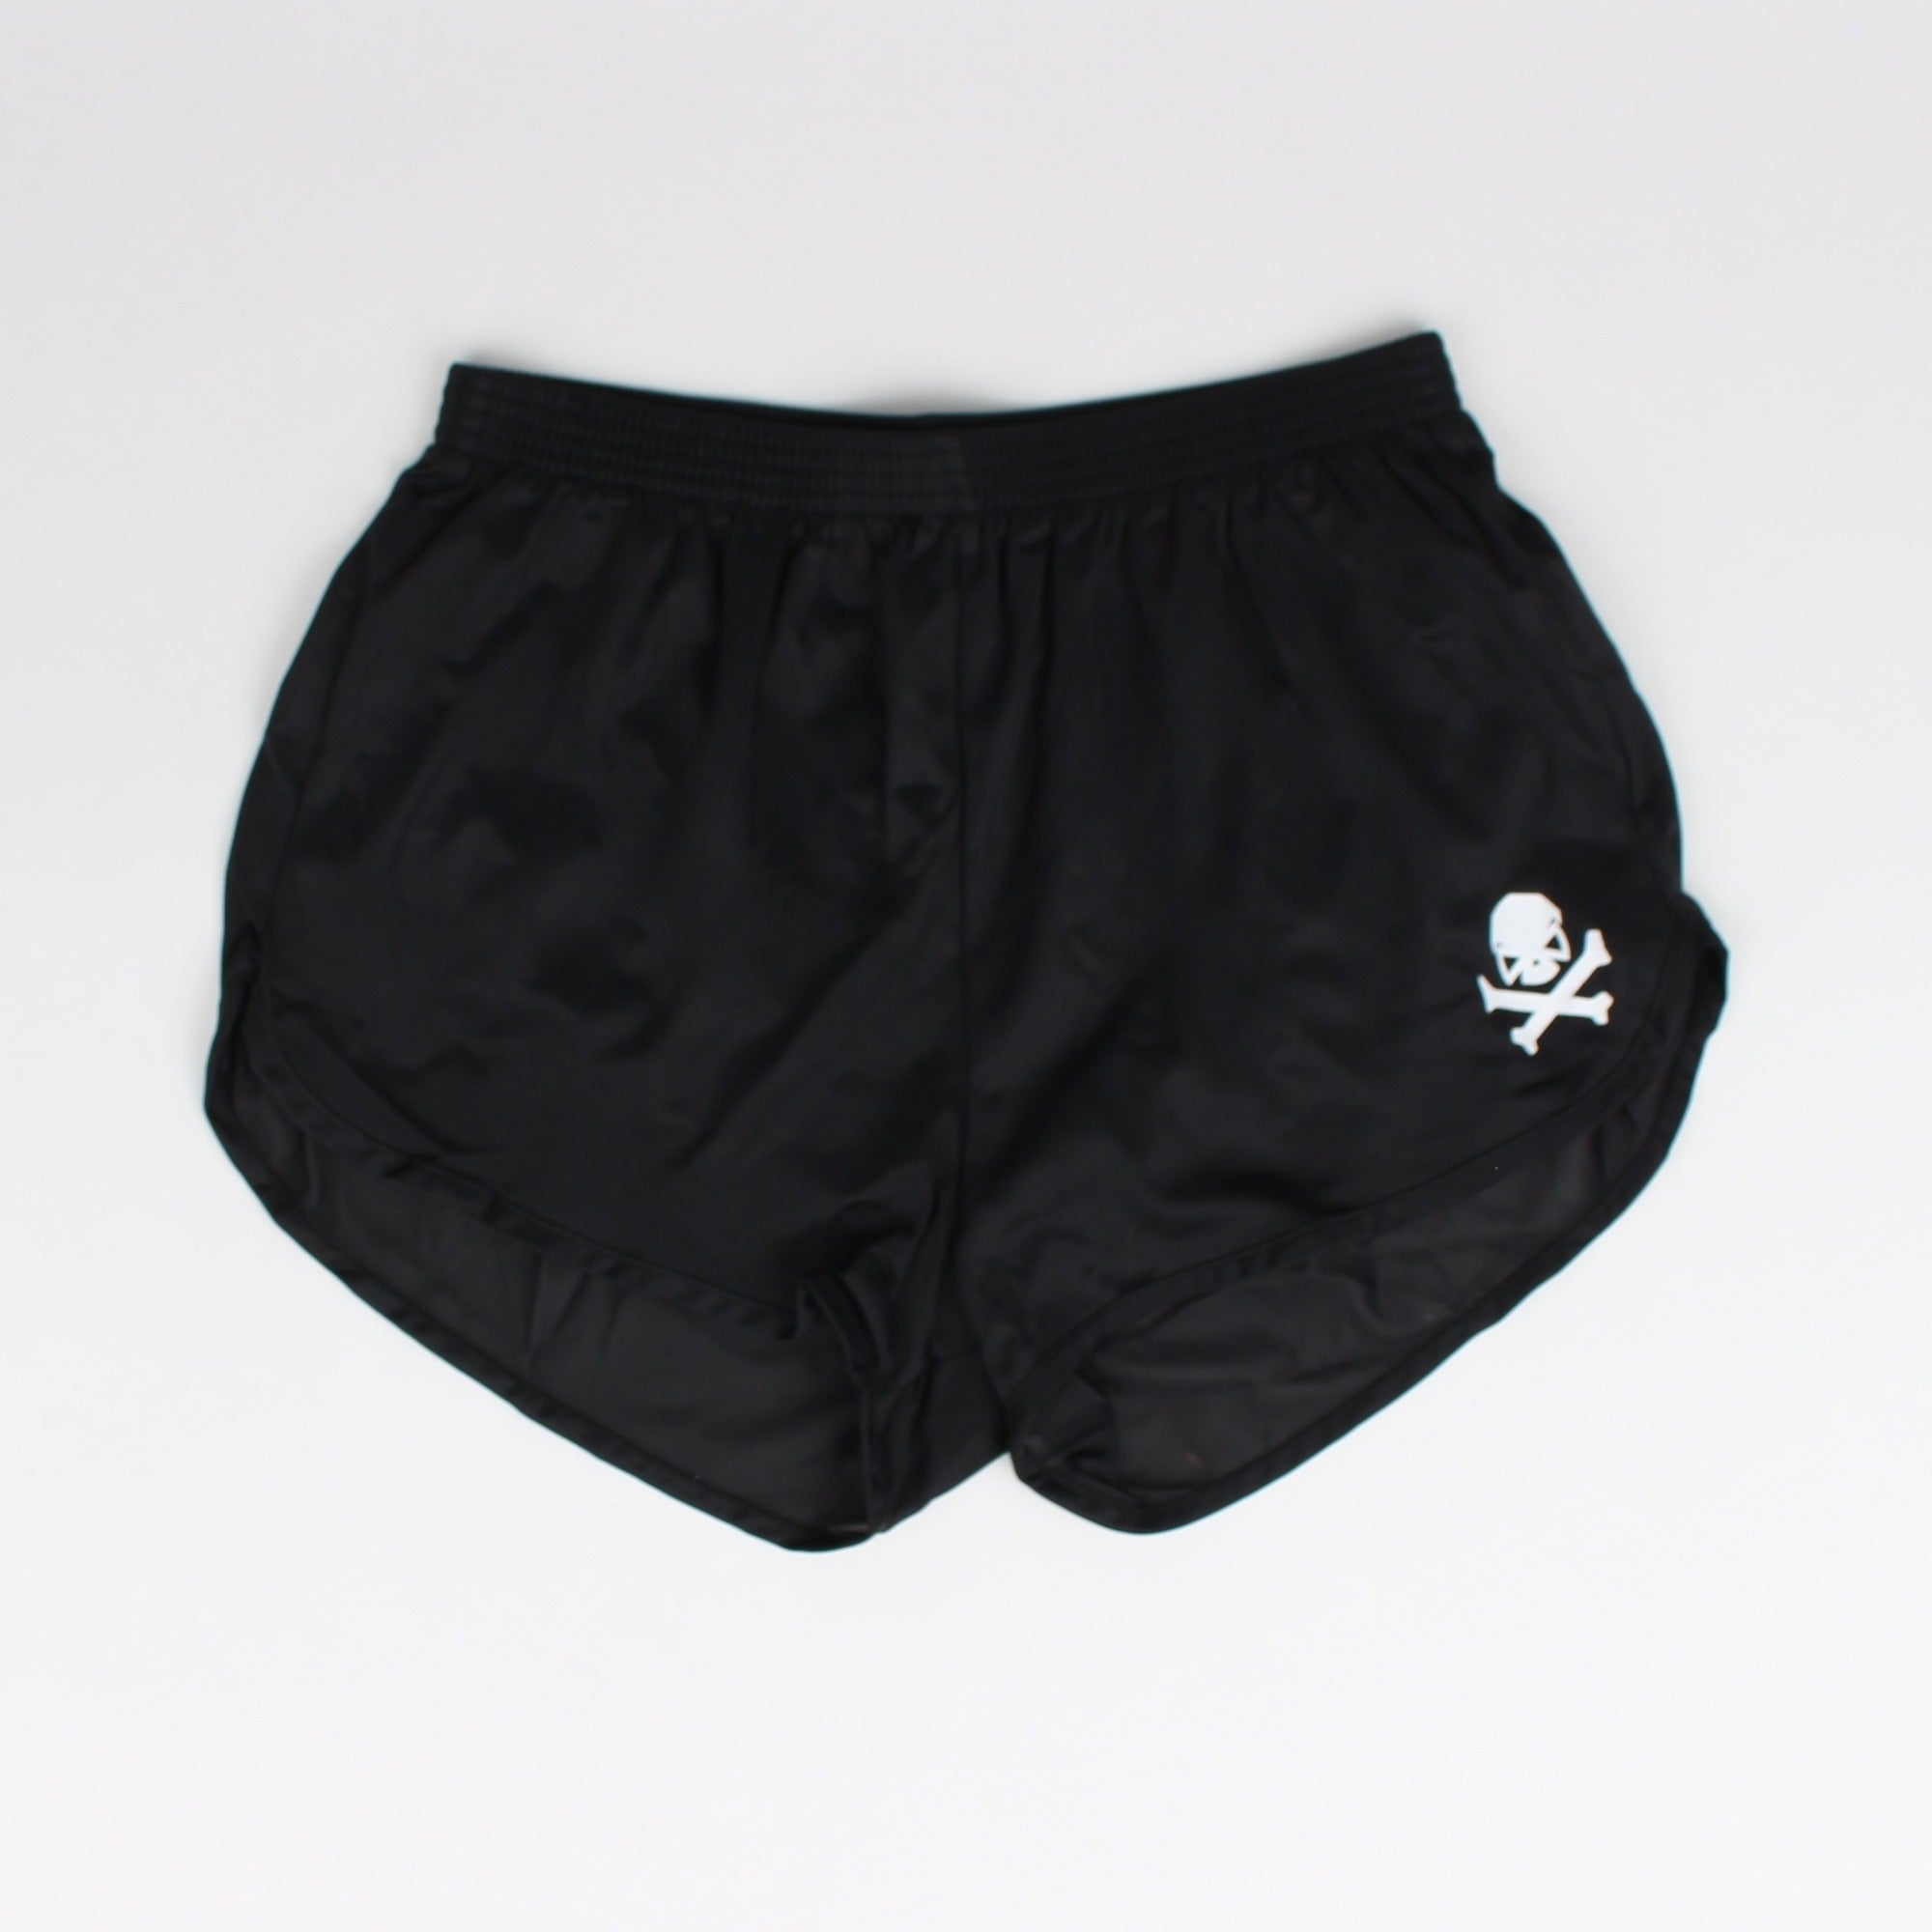 Silkies - Black with White Logo - Pipe Hitters Union